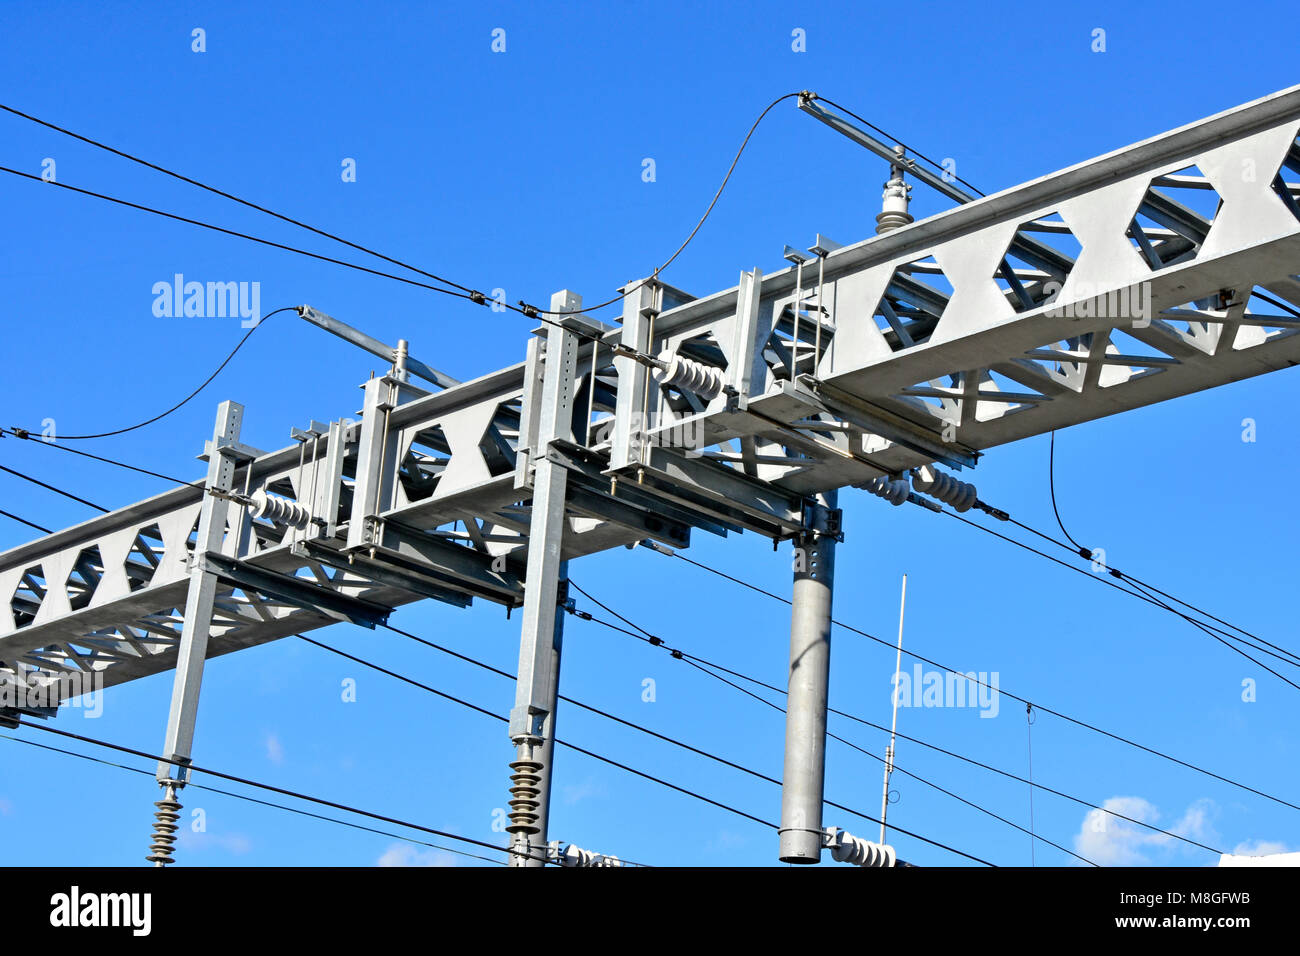 Two castellated steel beams in gantry for overhead electricity cables in train infrastructure project main line - Stock Image